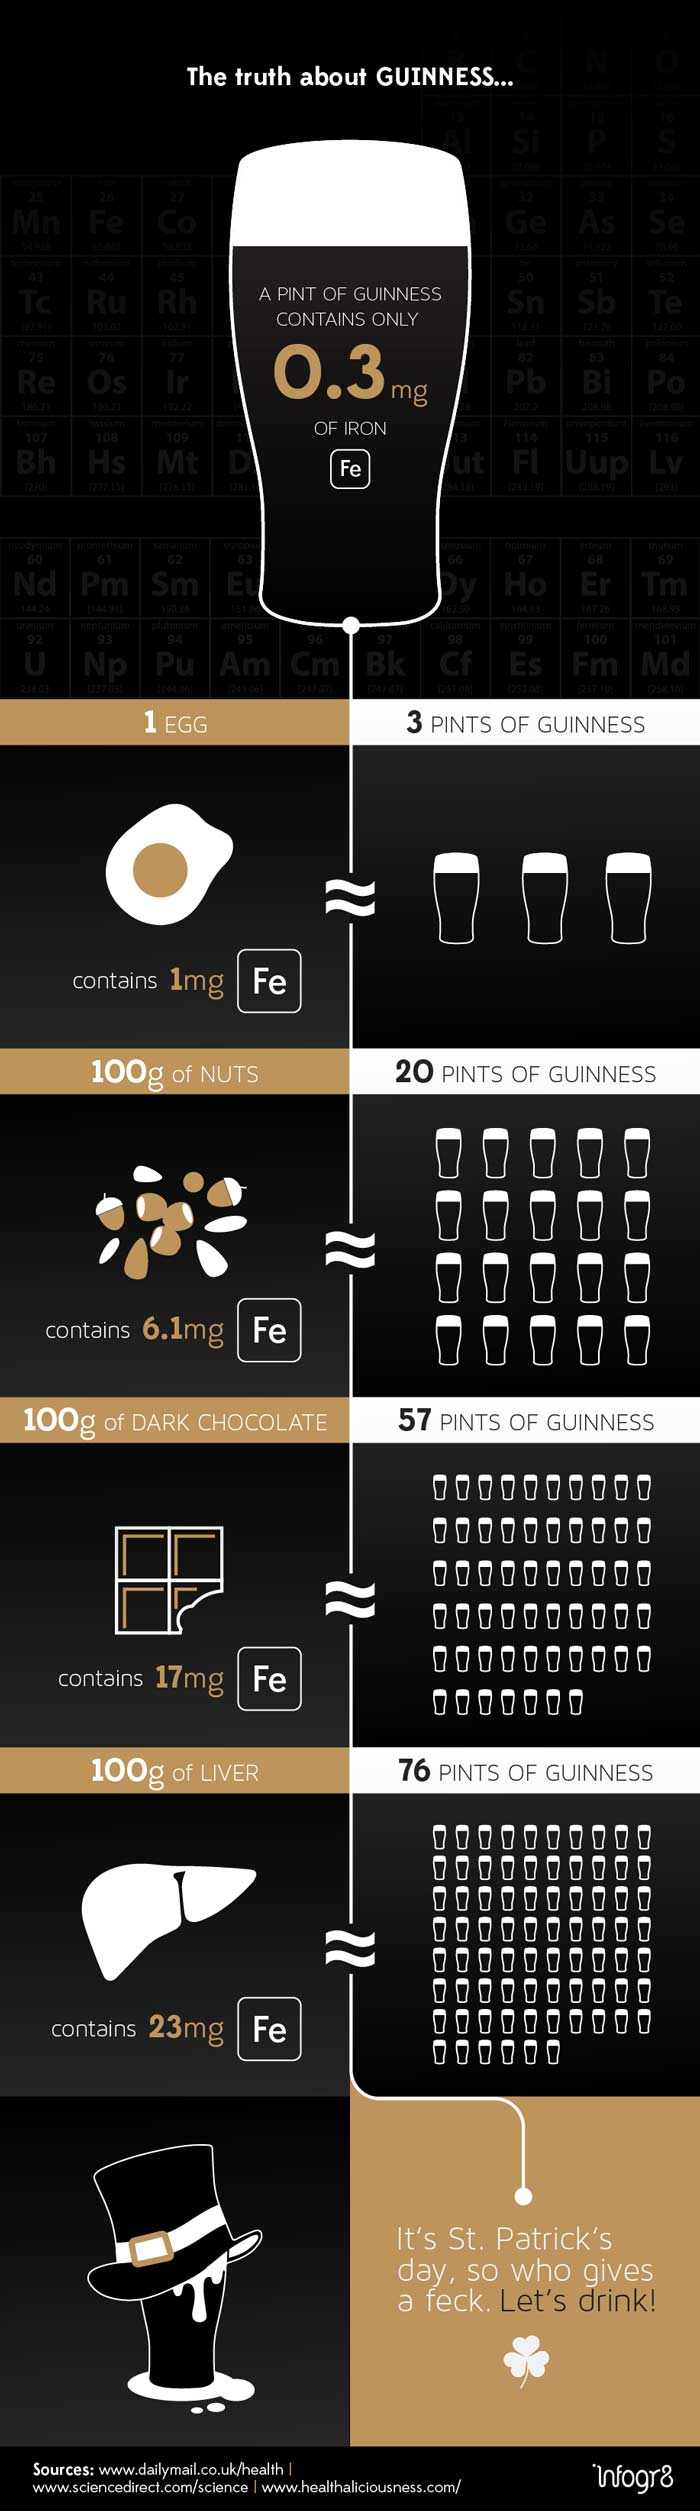 The-truth-about-Guinness-Infographic1